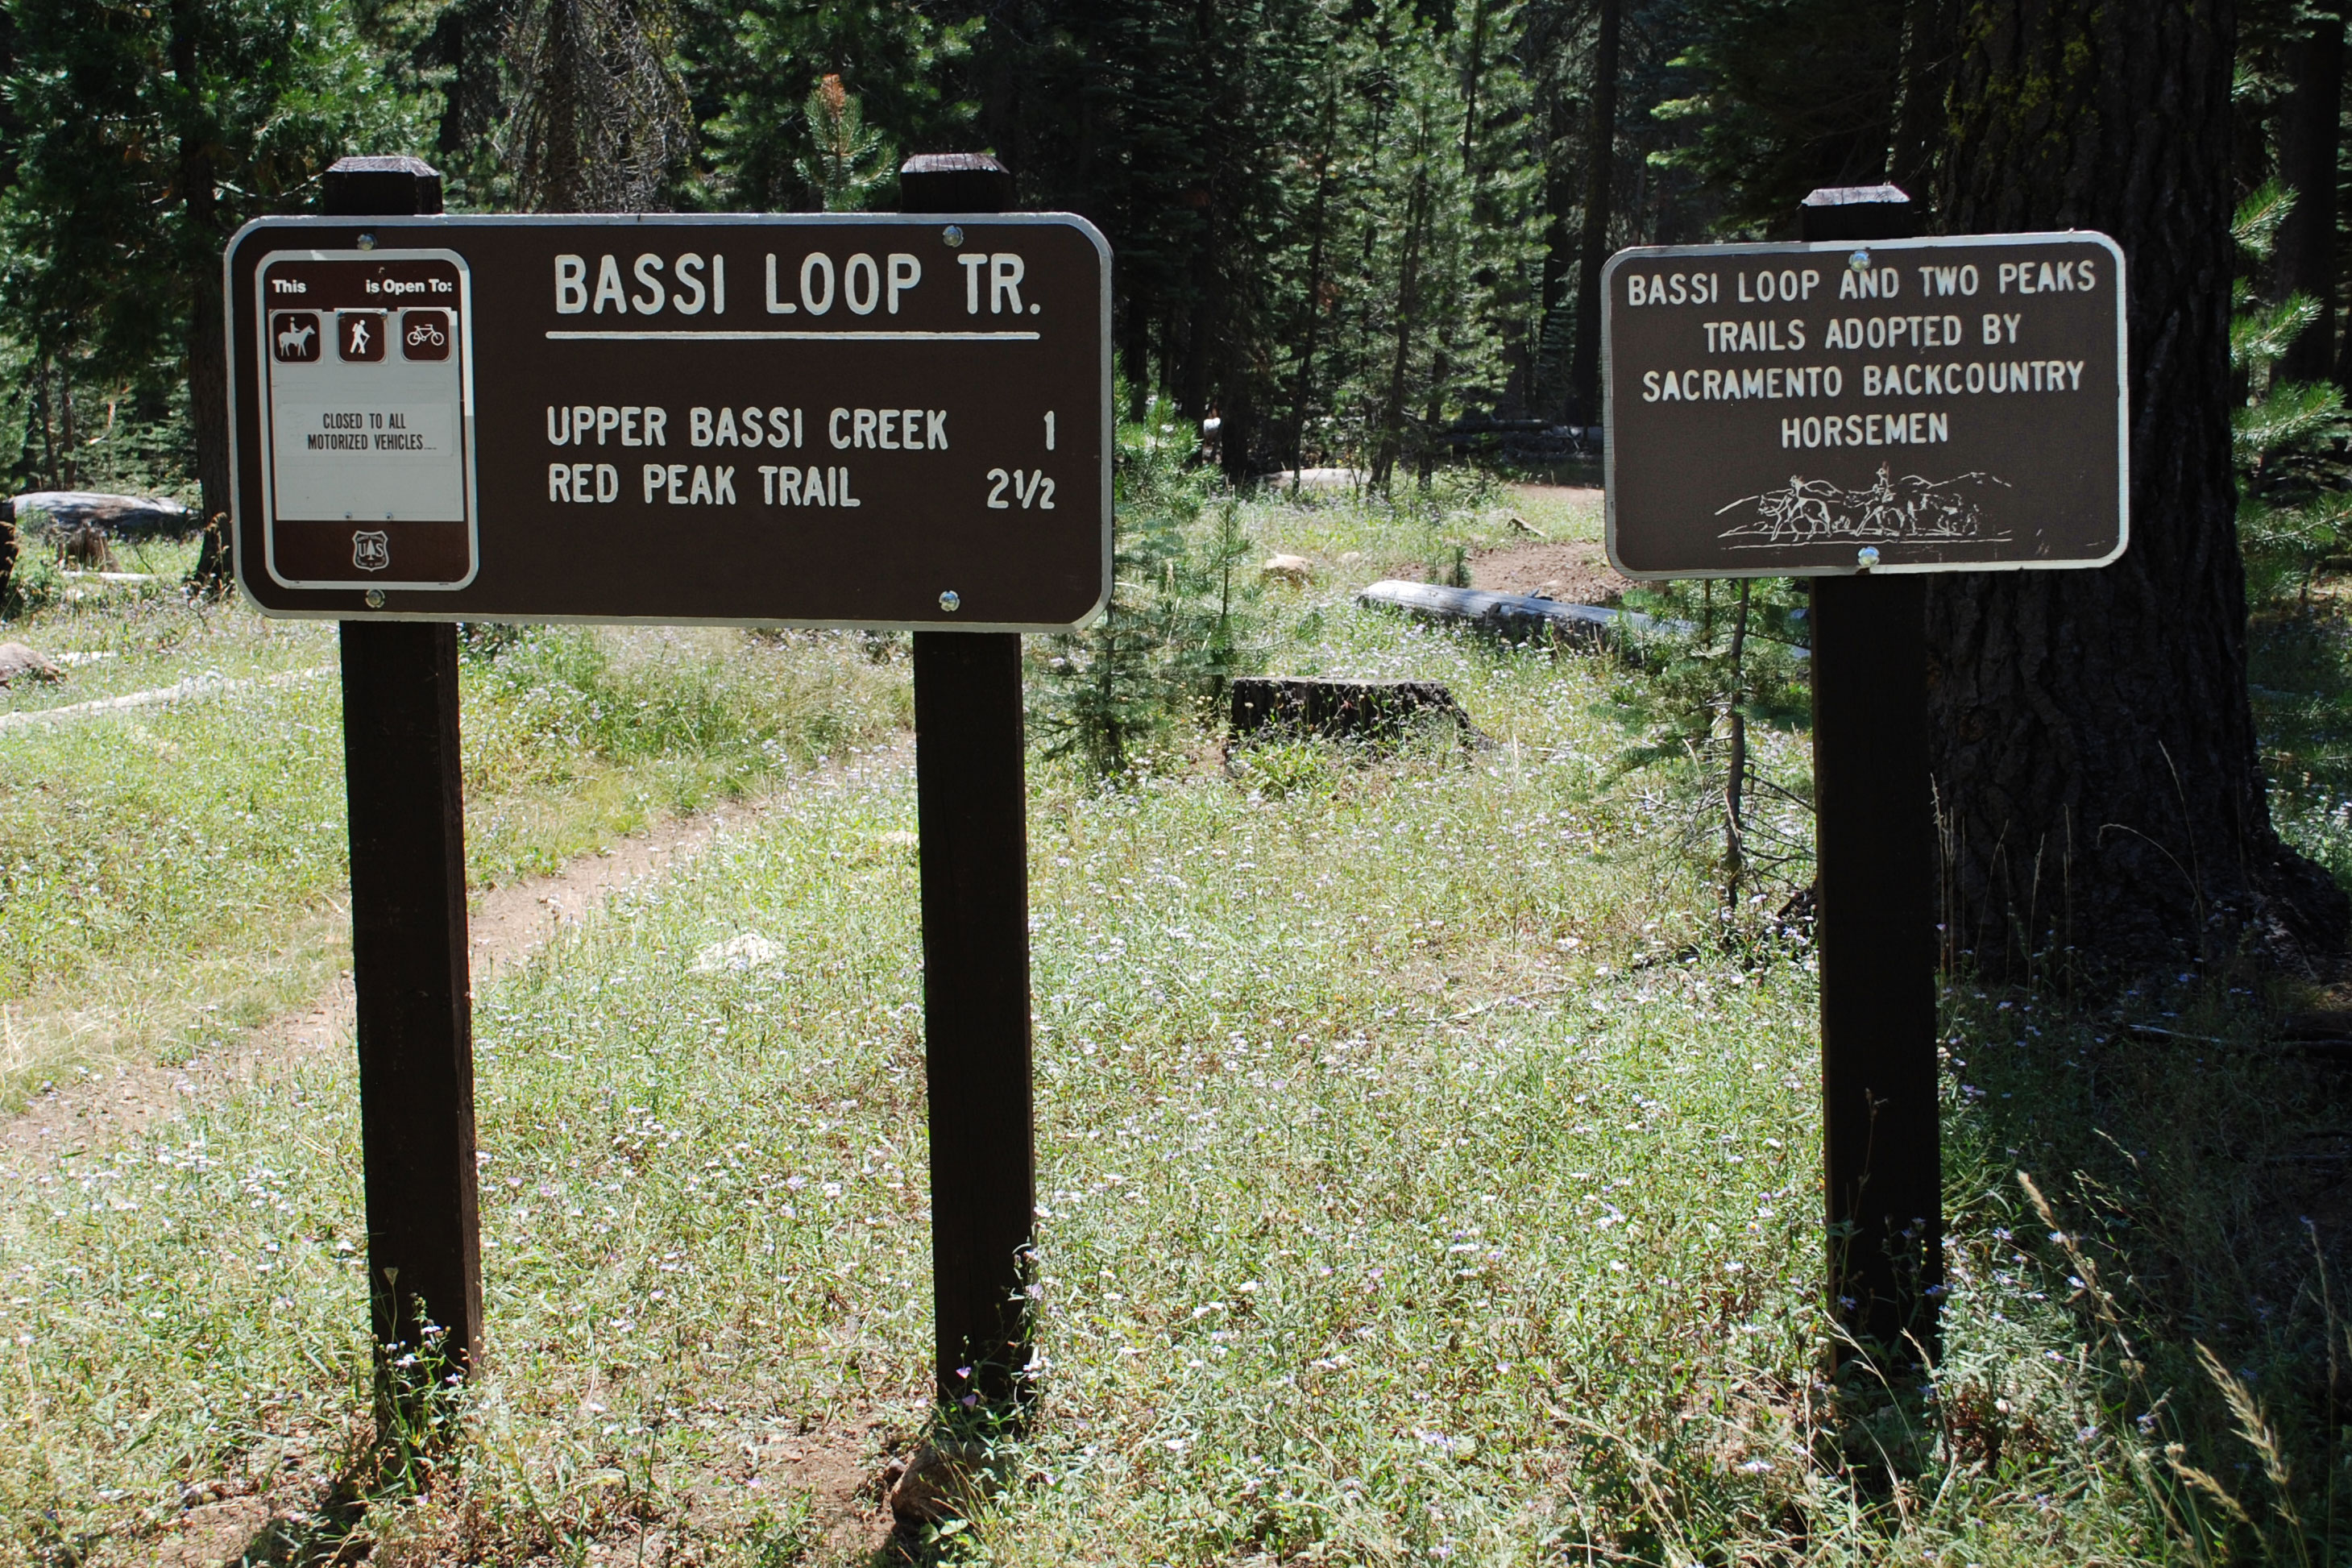 Trail sign for Bassi Loop,  Eldorado National Forest, CA